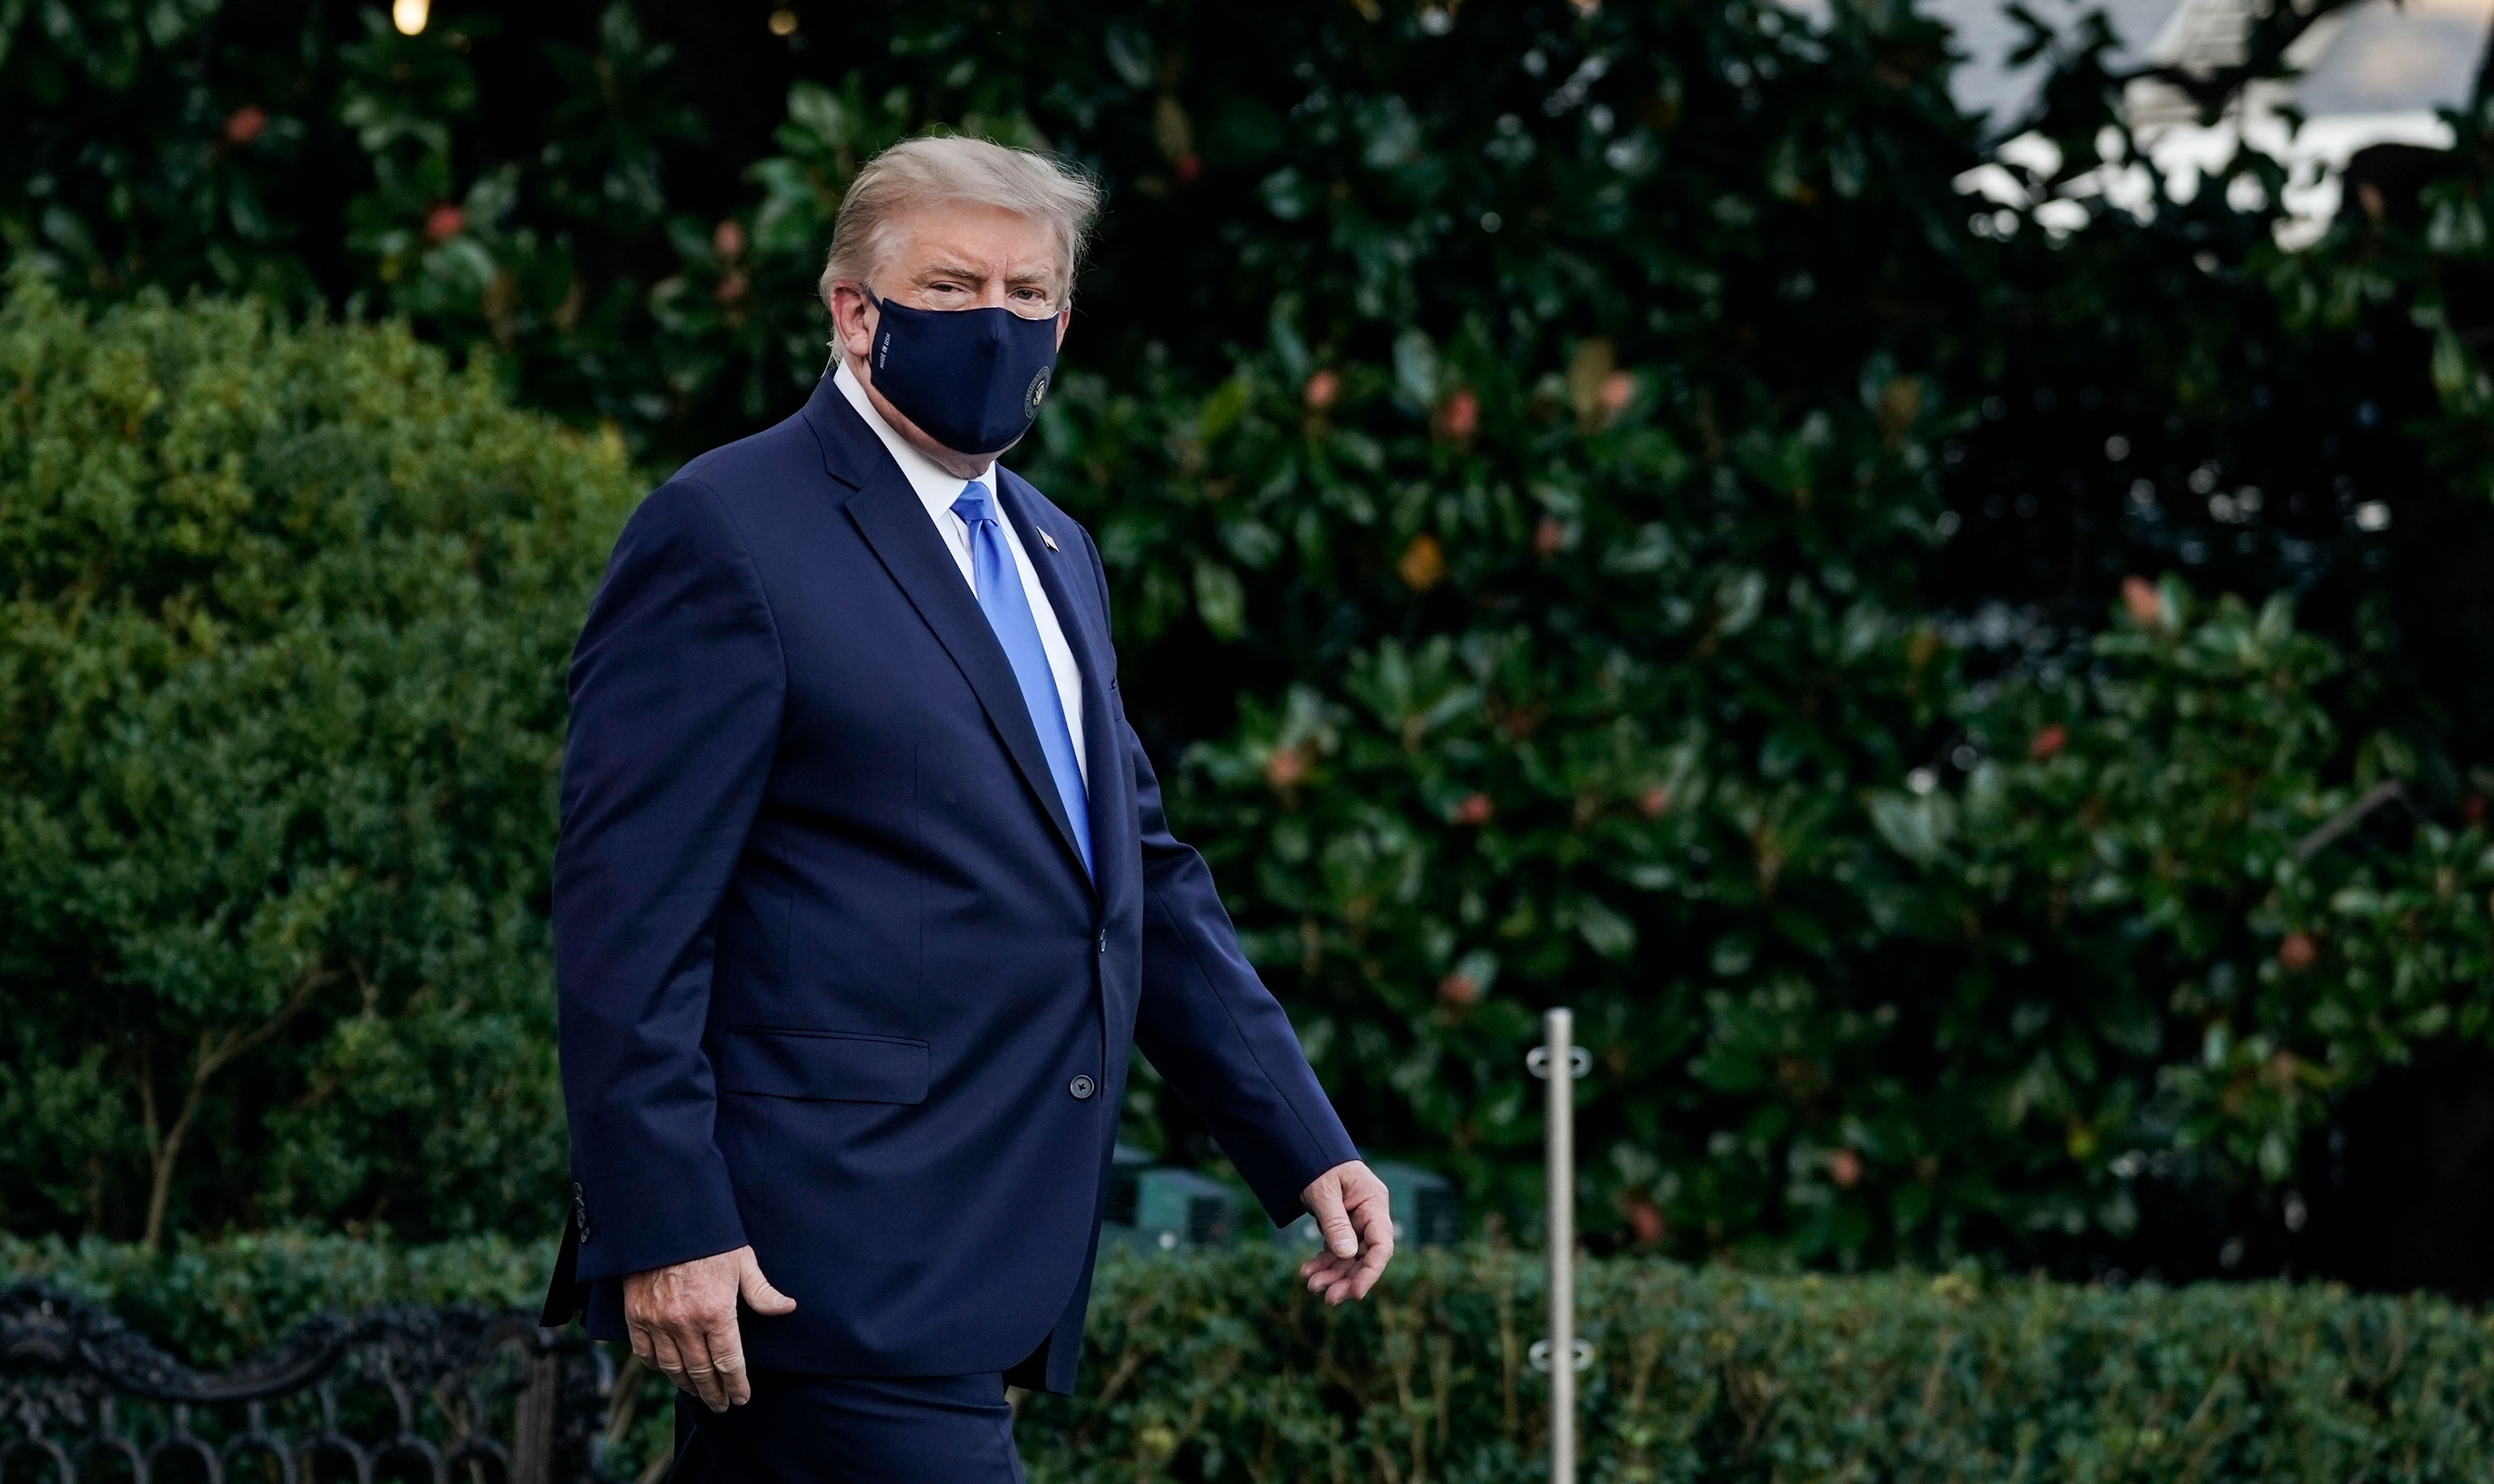 President Donald Trump leaves the White House for Walter Reed National Military Medical Center on October 2.